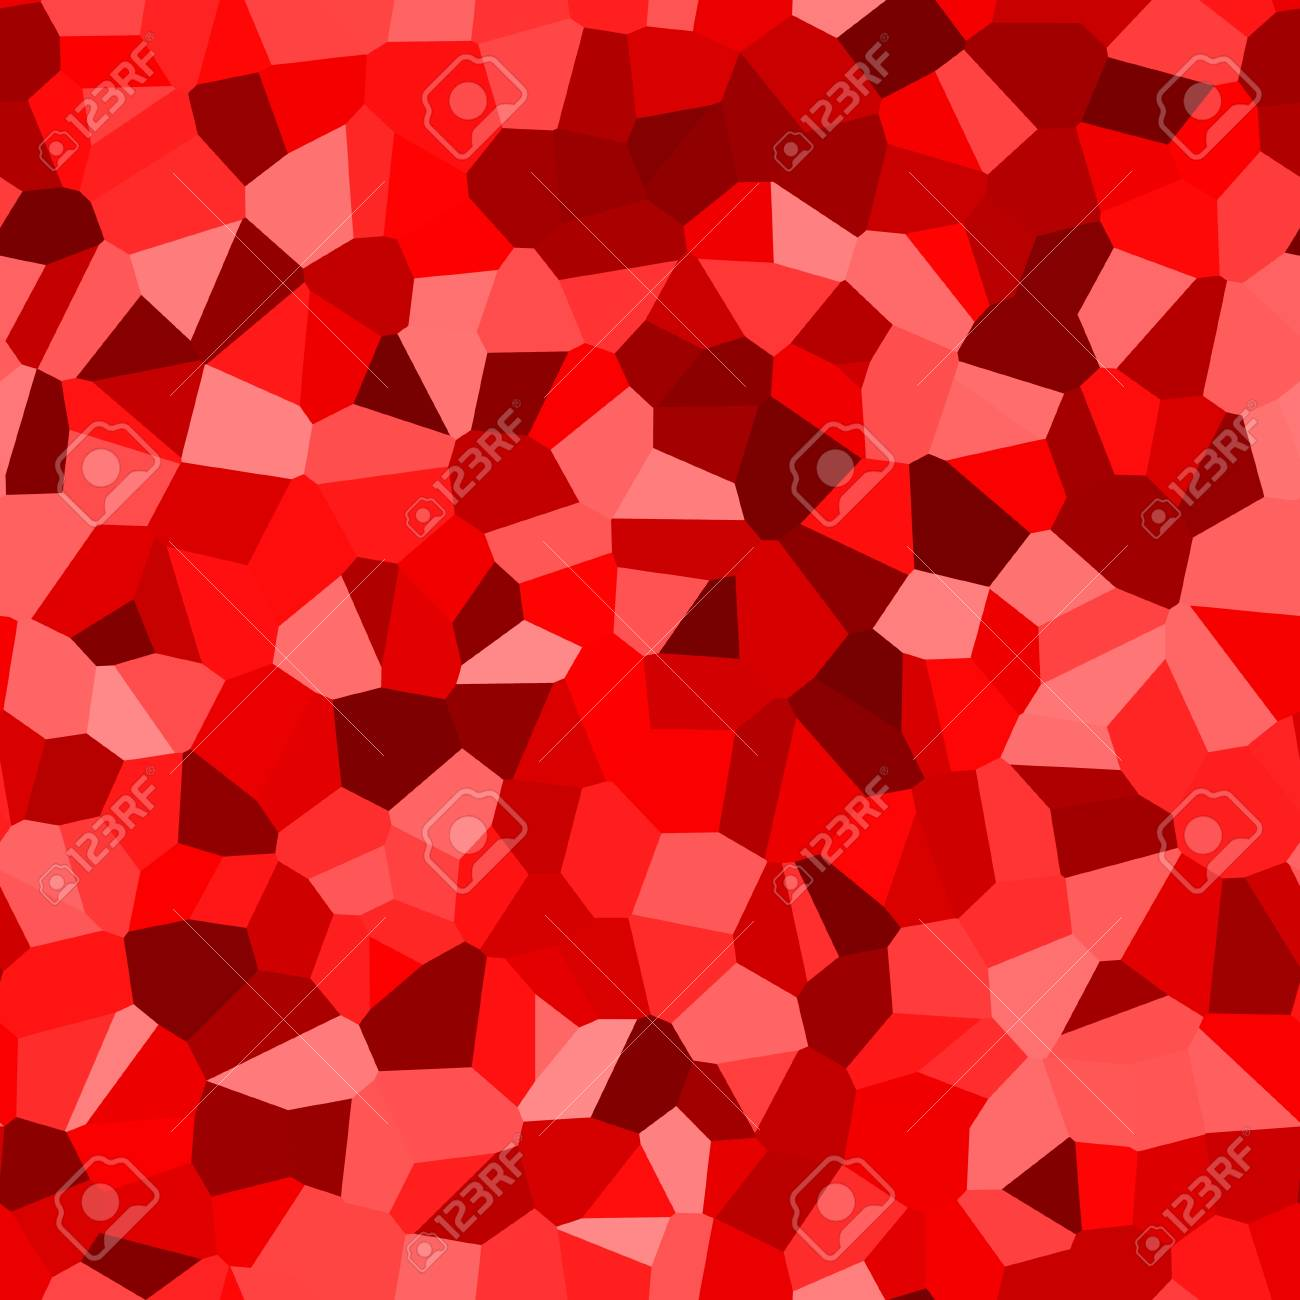 Texture Red Glass With More Shades Red Kaleidoscope Paint Seamless Stock Photo Picture And Royalty Free Image Image 105579951